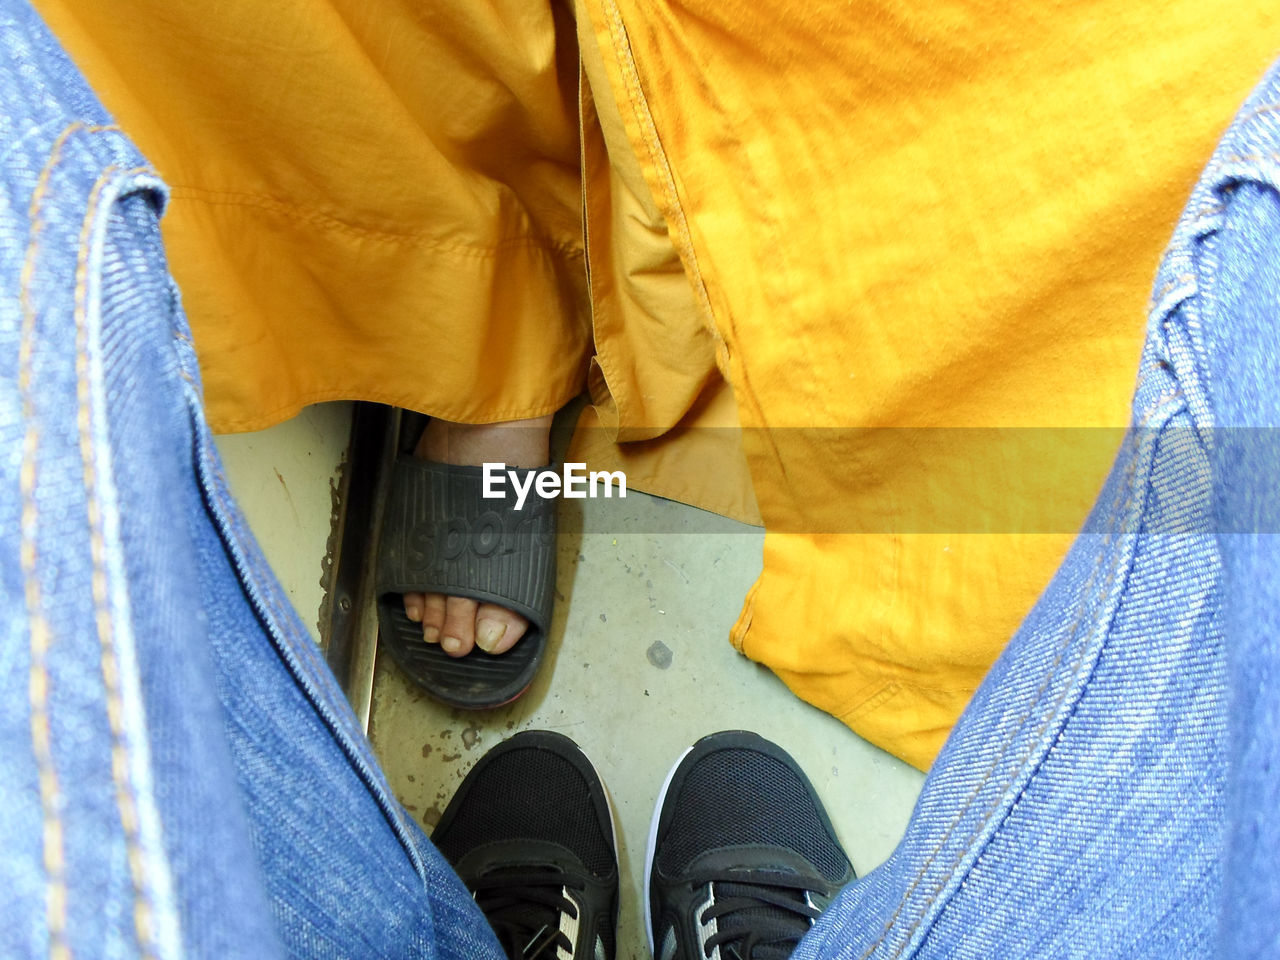 low section, shoe, human leg, human body part, one person, real people, body part, personal perspective, standing, lifestyles, jeans, textile, blue, casual clothing, denim, yellow, high angle view, unrecognizable person, leisure activity, human foot, outdoors, human limb